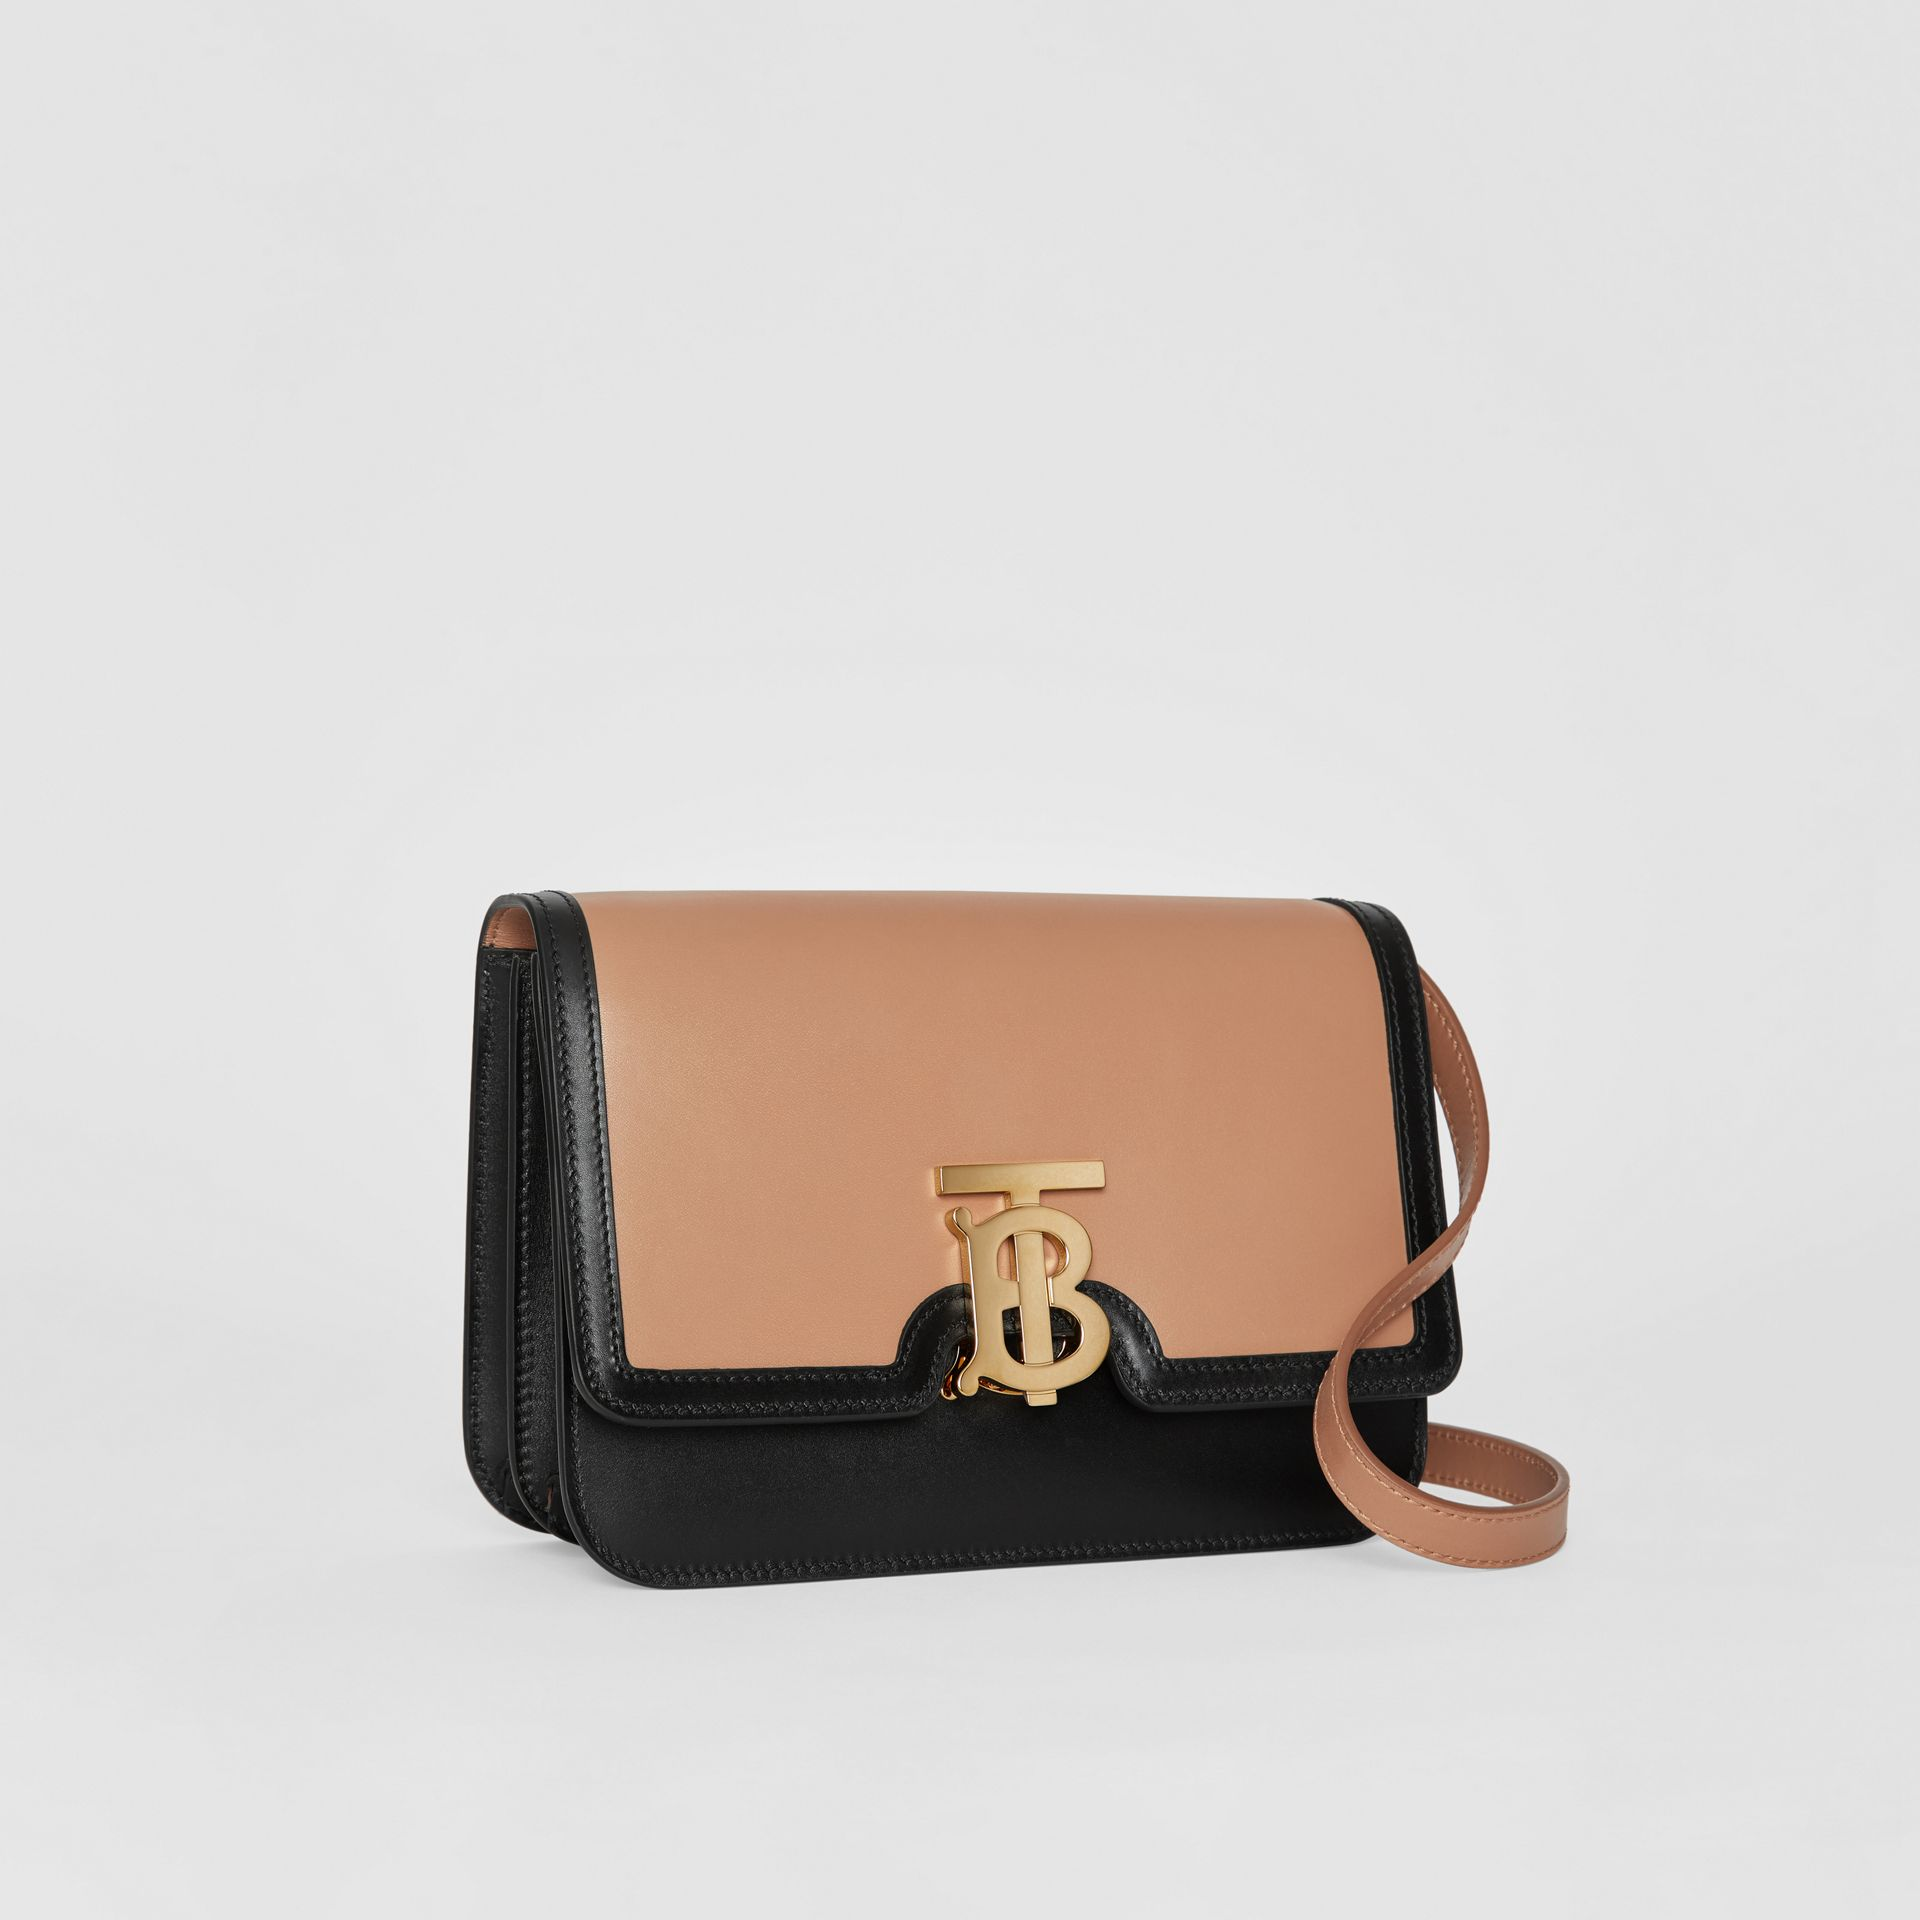 Small Leather TB Bag in Light Camel/black - Women | Burberry - gallery image 6